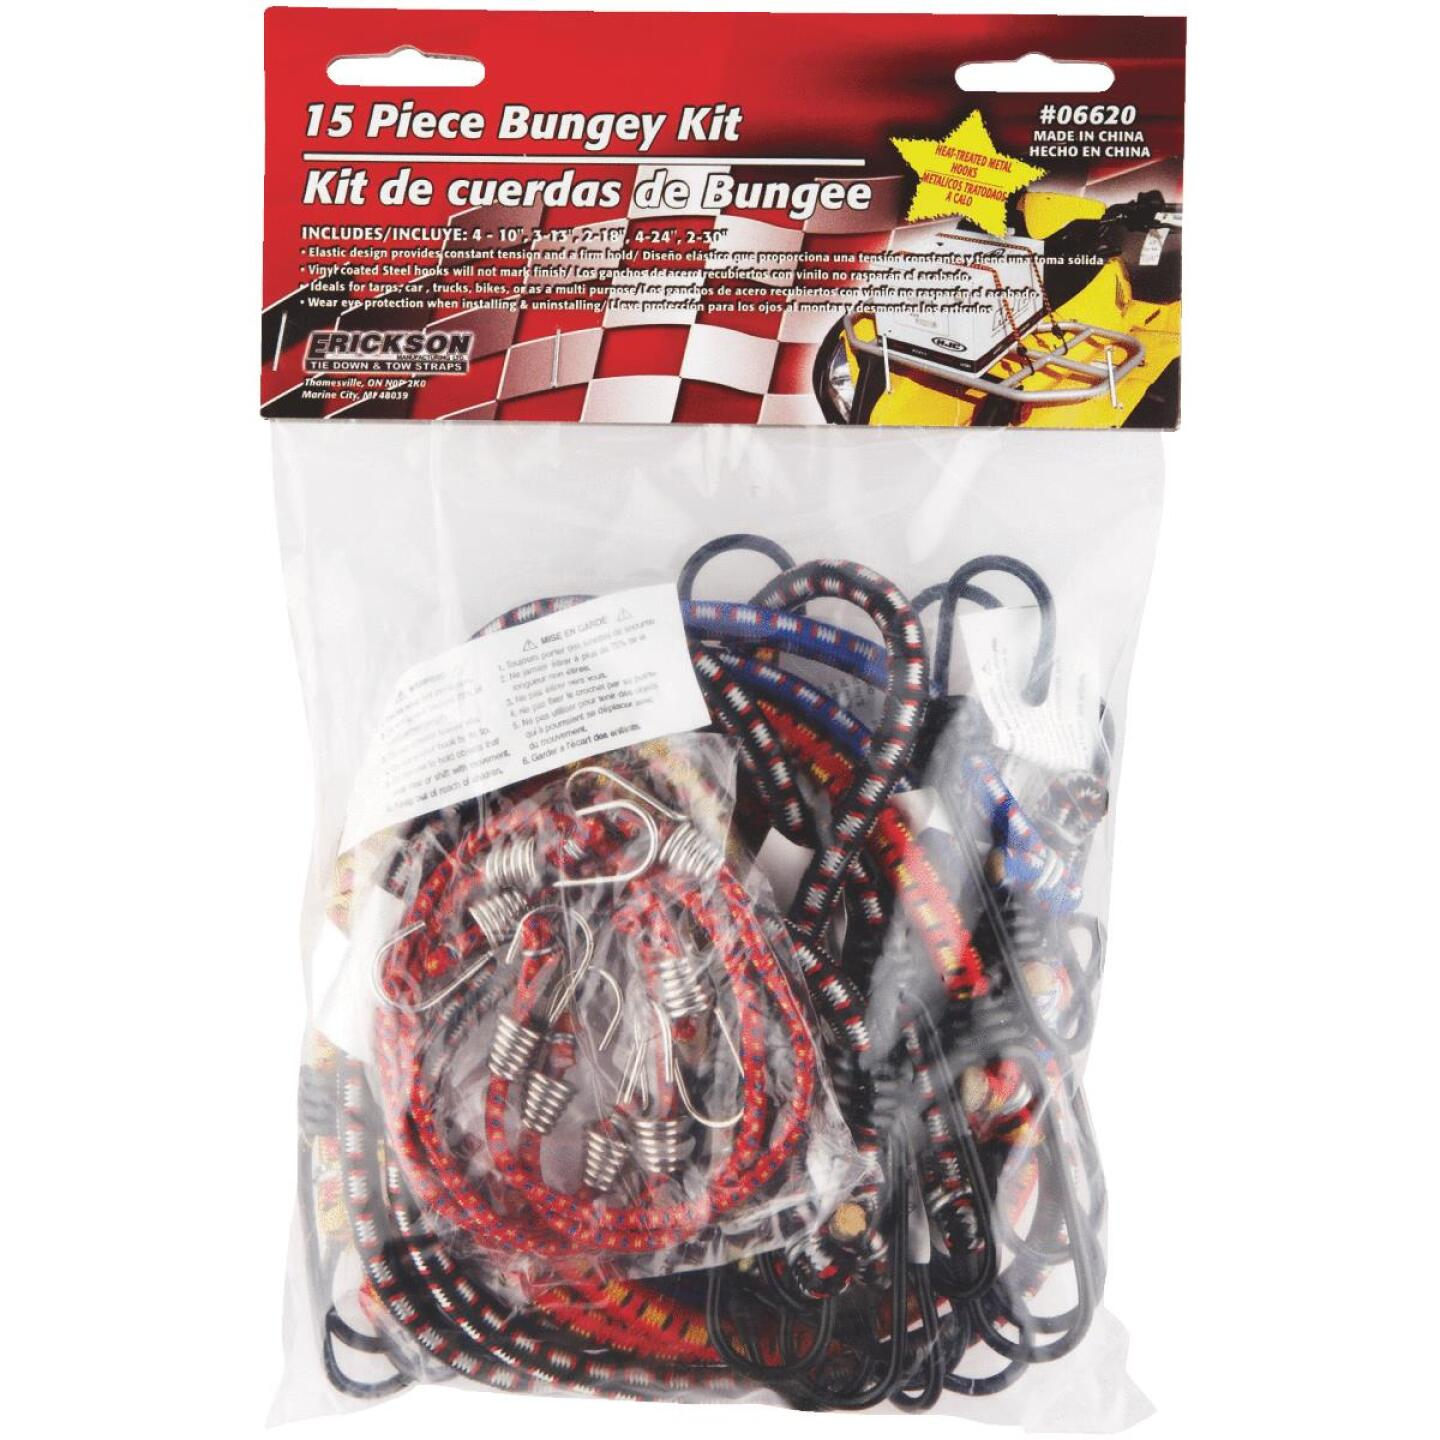 Erickson Vinyl Coated Wire Bungee Cord Set (15-Piece) Image 1